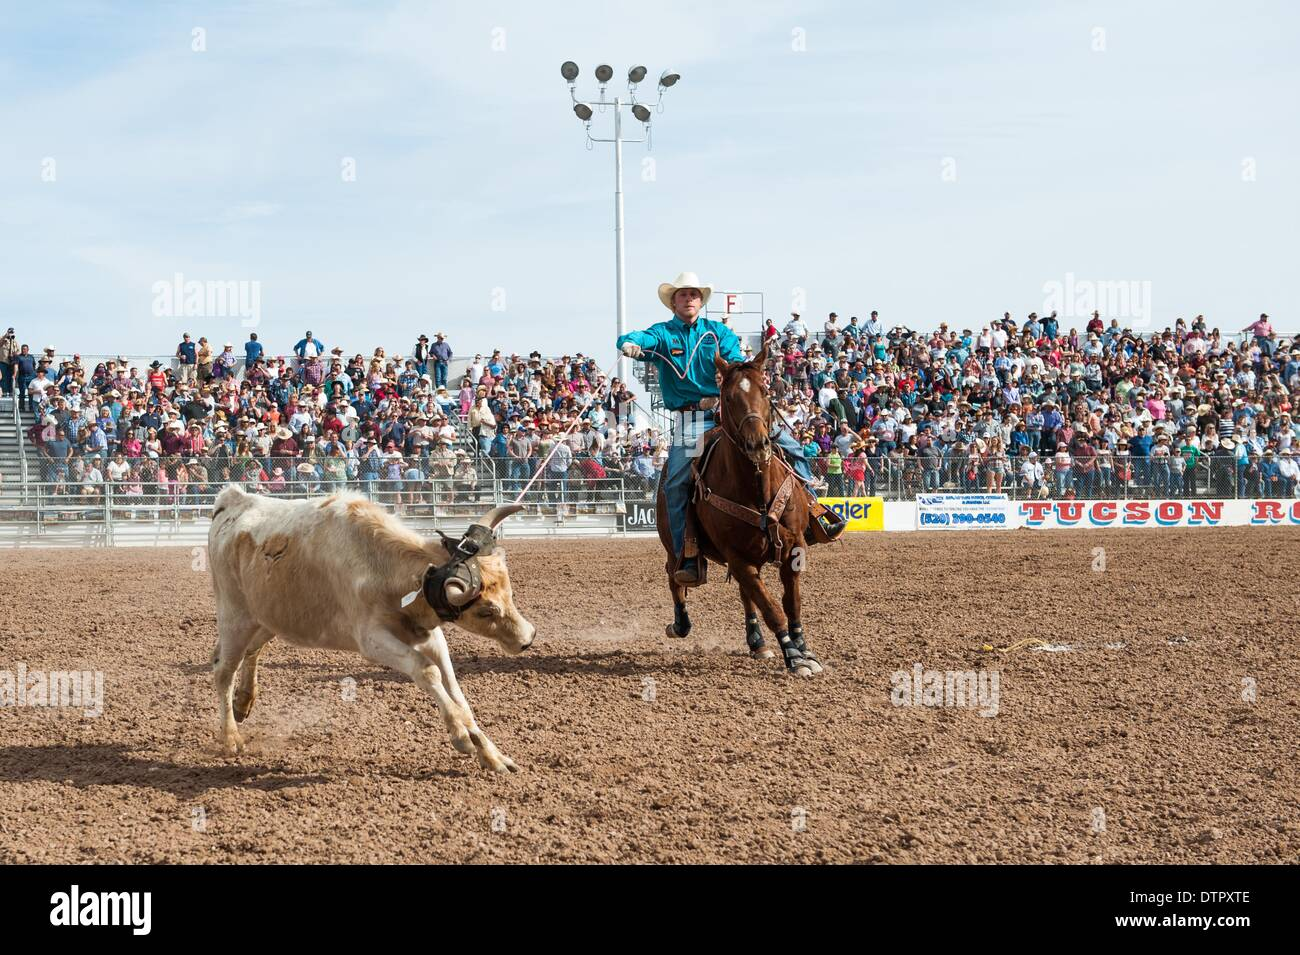 Tucson, Arizona, USA. 22nd Feb, 2014. DOYLE HOSKINS ropes his steer during the team roping event at the Fiesta de Stock Photo